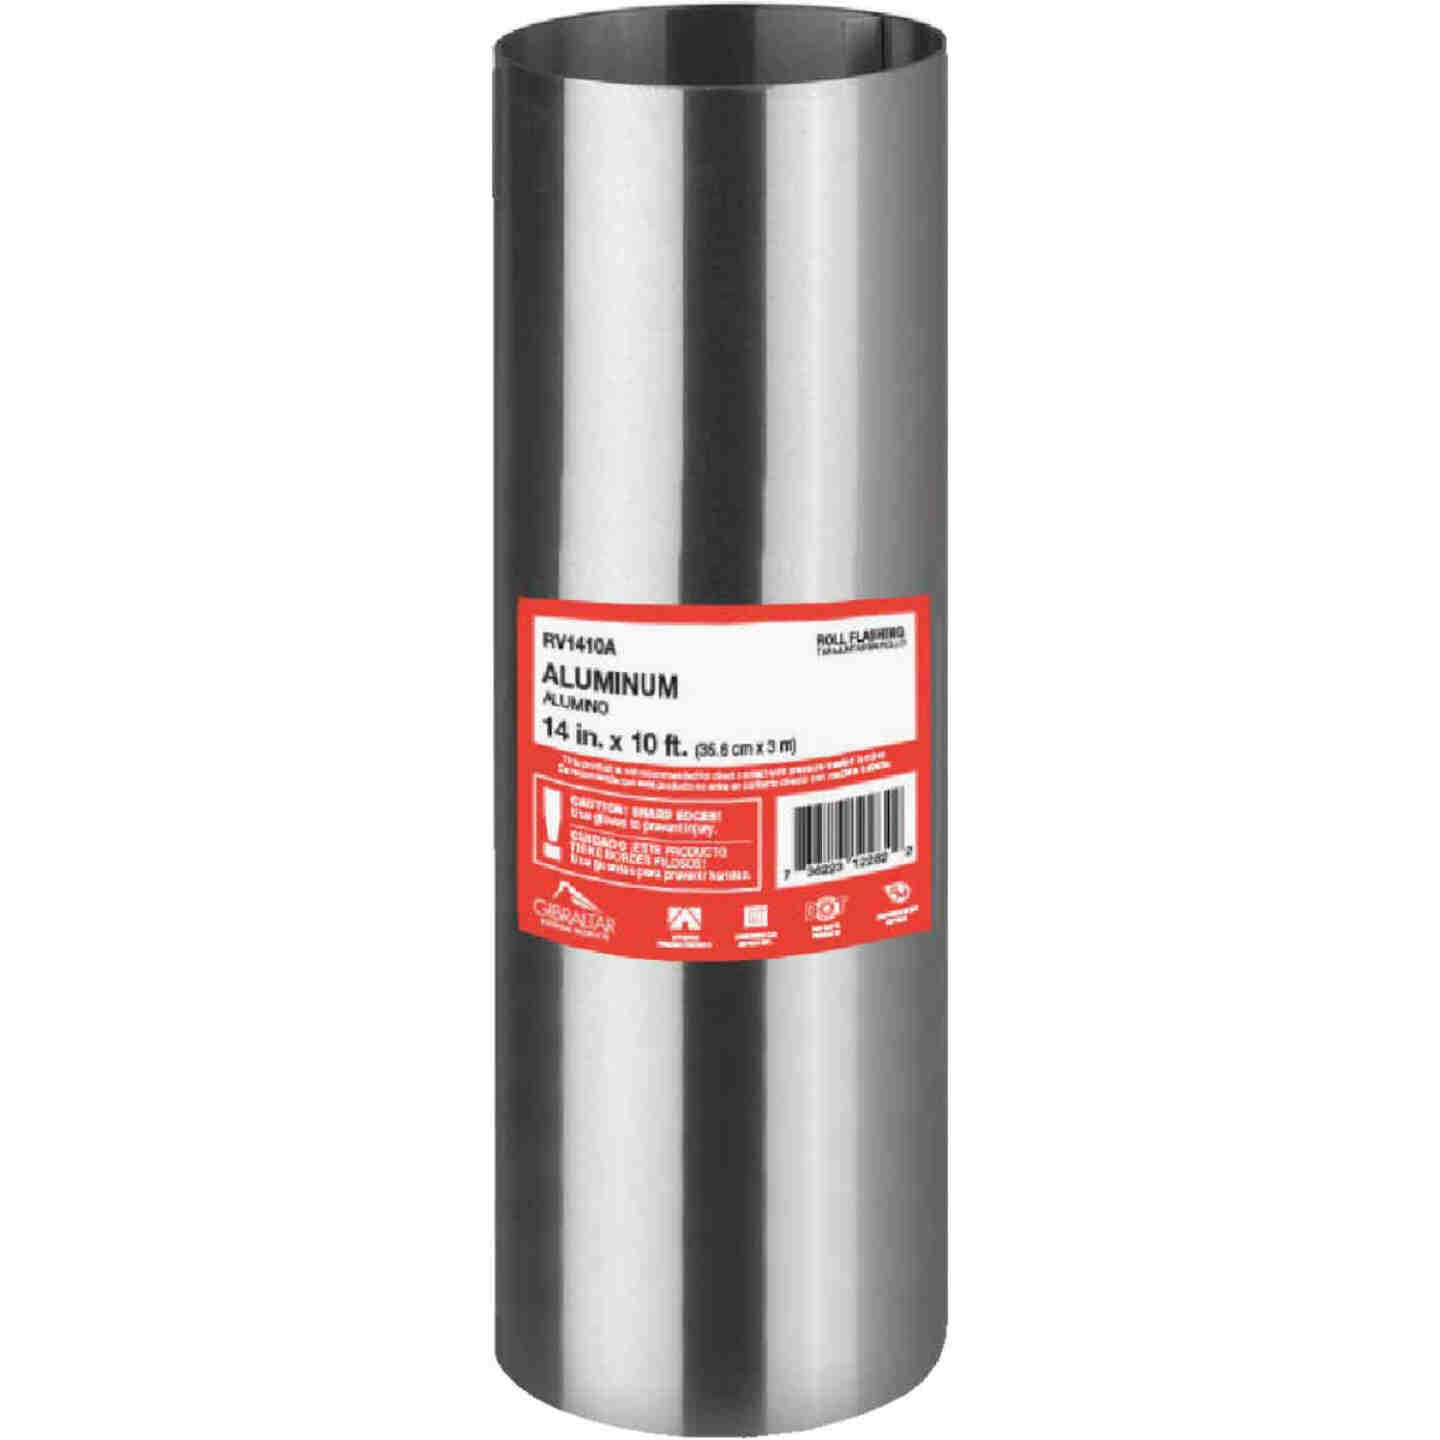 NorWesco 14 In. x 10 Ft. Mill Aluminum Roll Valley Flashing Image 1